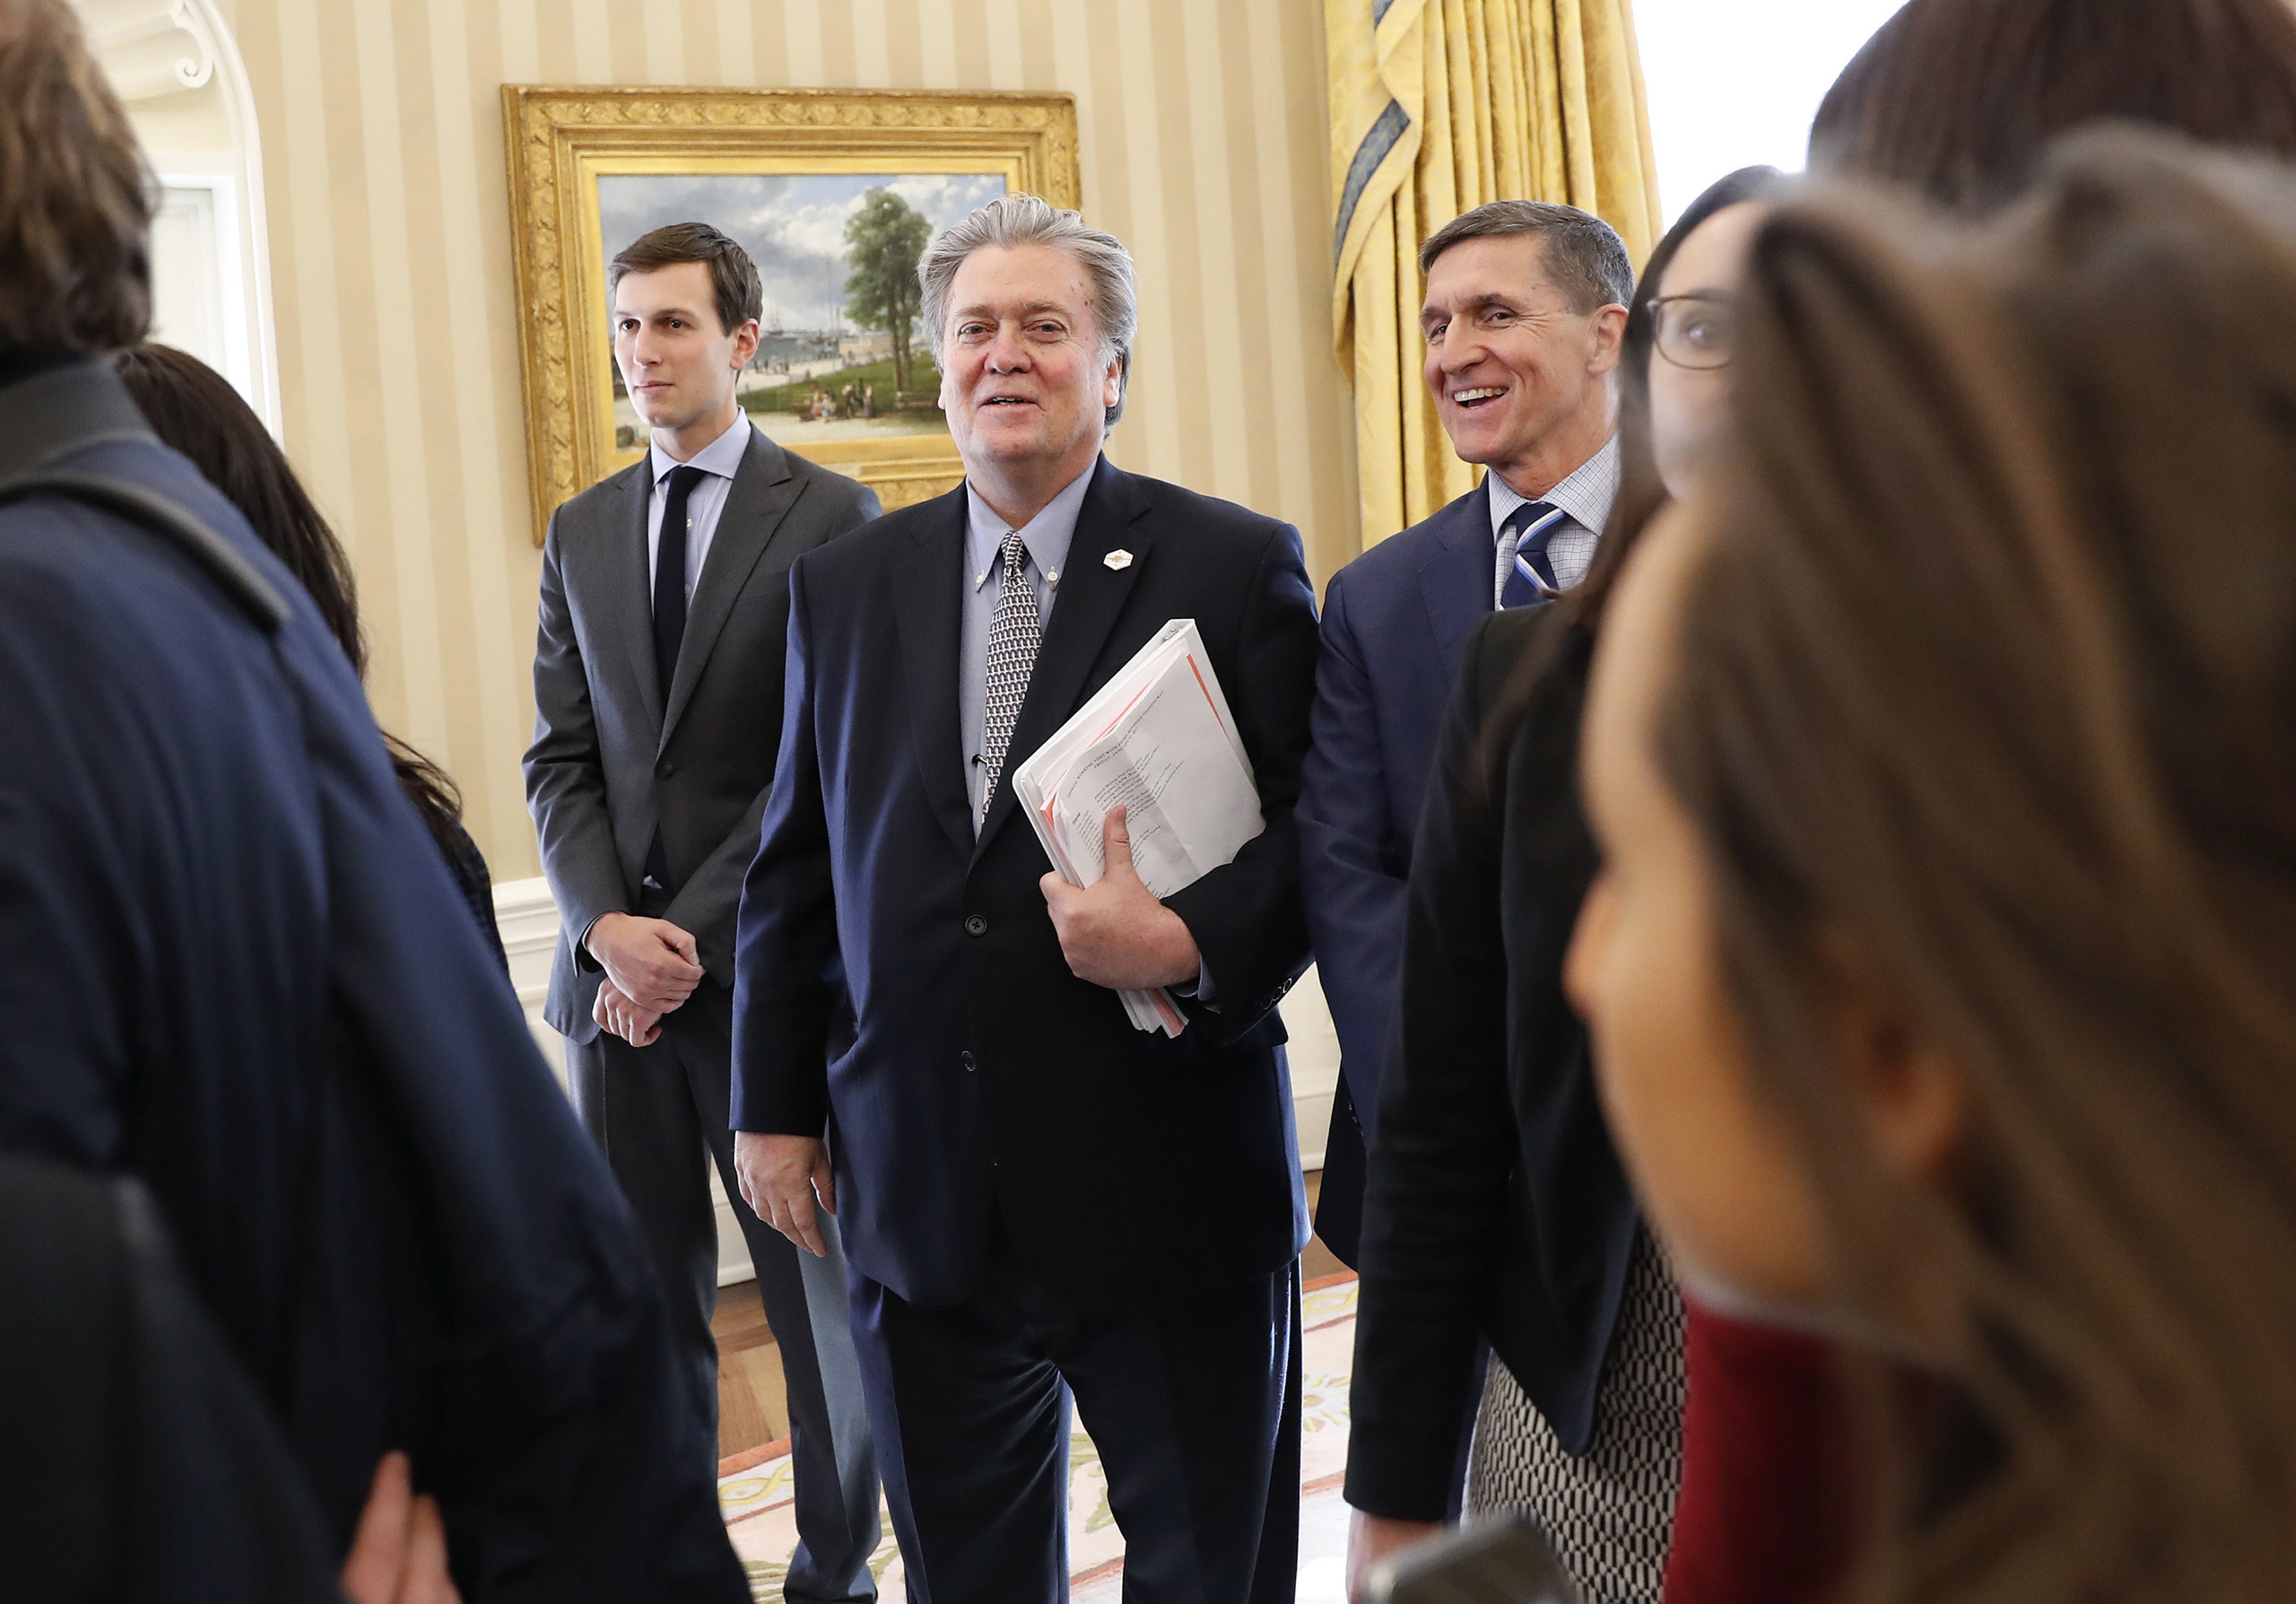 White House senior advisers Jared Kushner, Steve Bannon and national security adviser Michael Flynn  in the Oval Office, during a meeting between President  Trump and British Prime Minister Theresa May, Jan. 27, 2017.